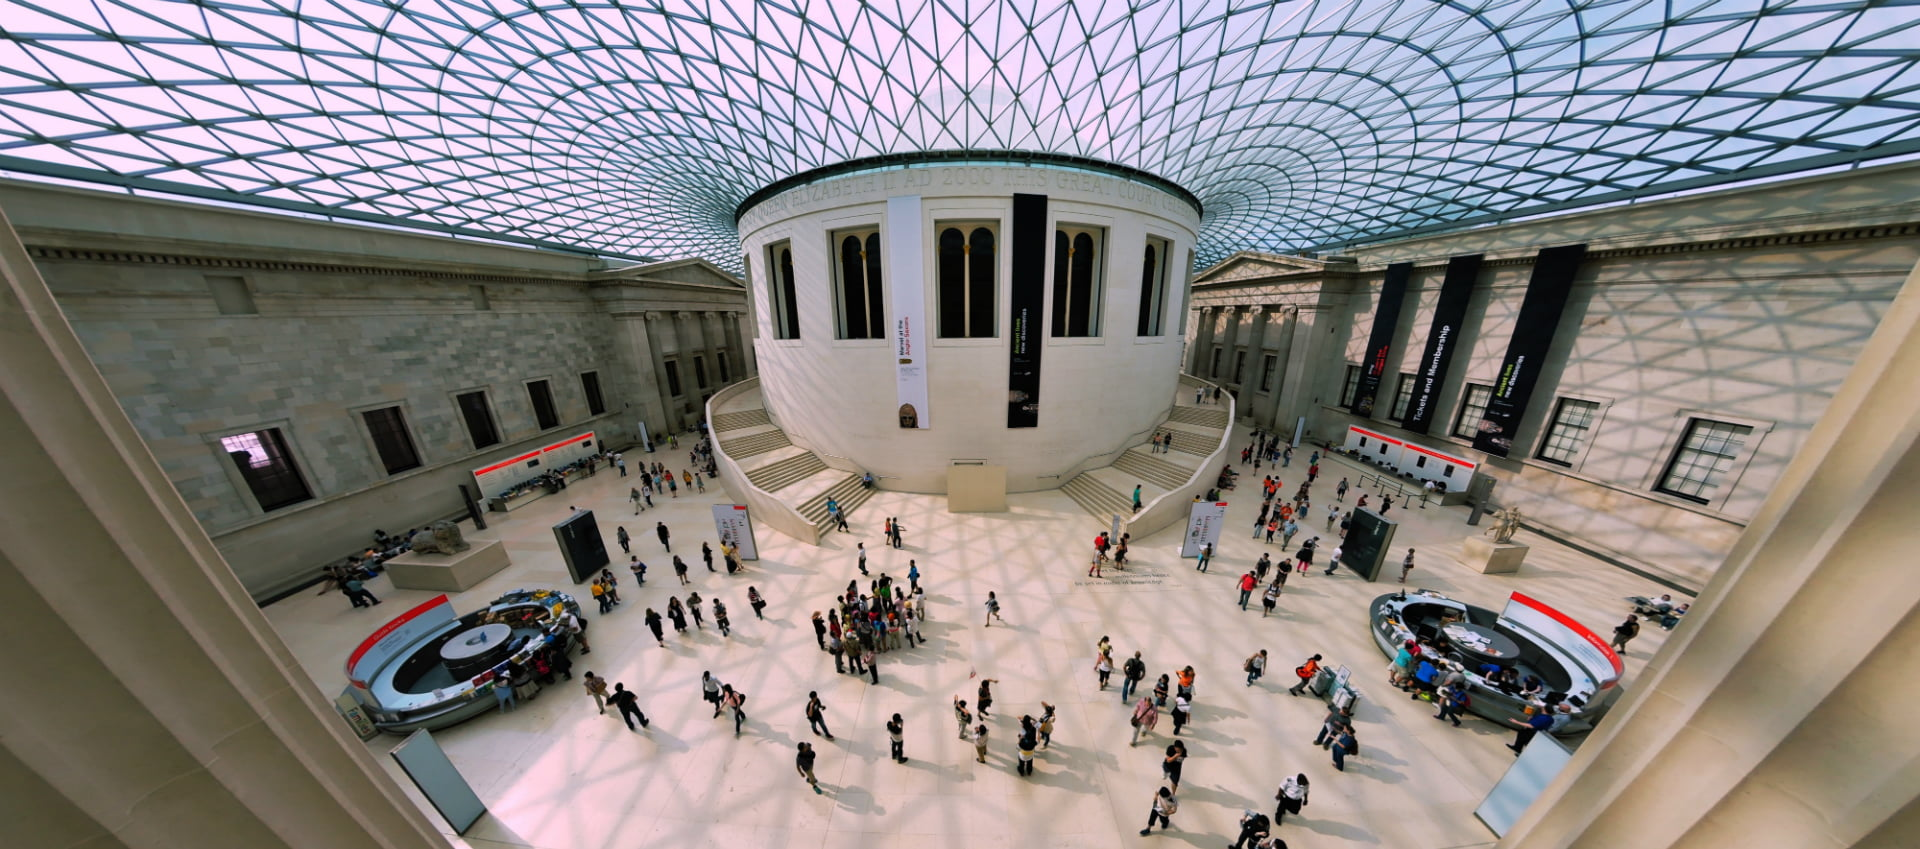 Modern Exhibition Stand Up Comedy : The best museums in london from architecture to london buses